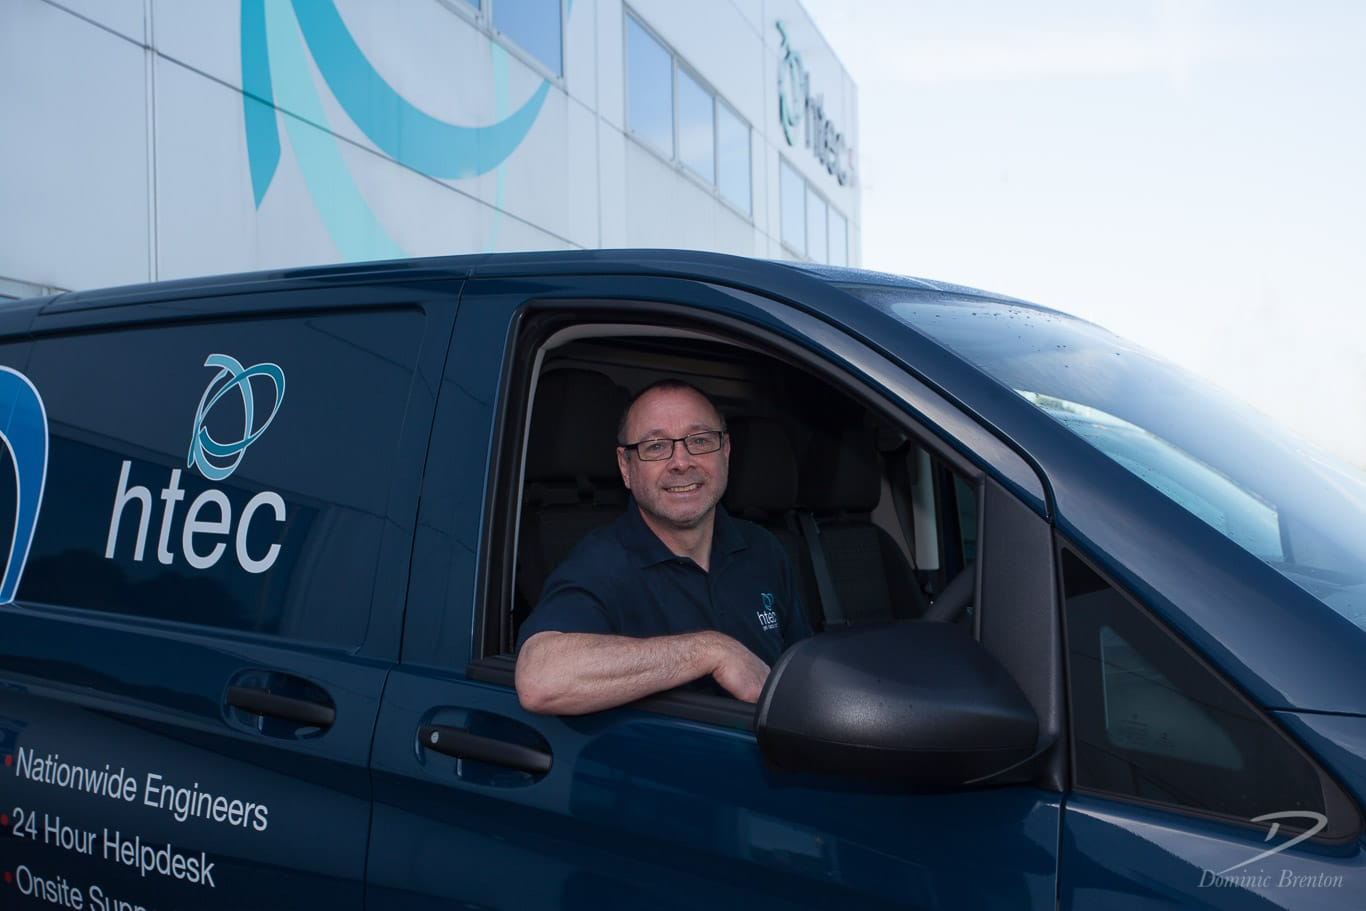 HTEC man in a van